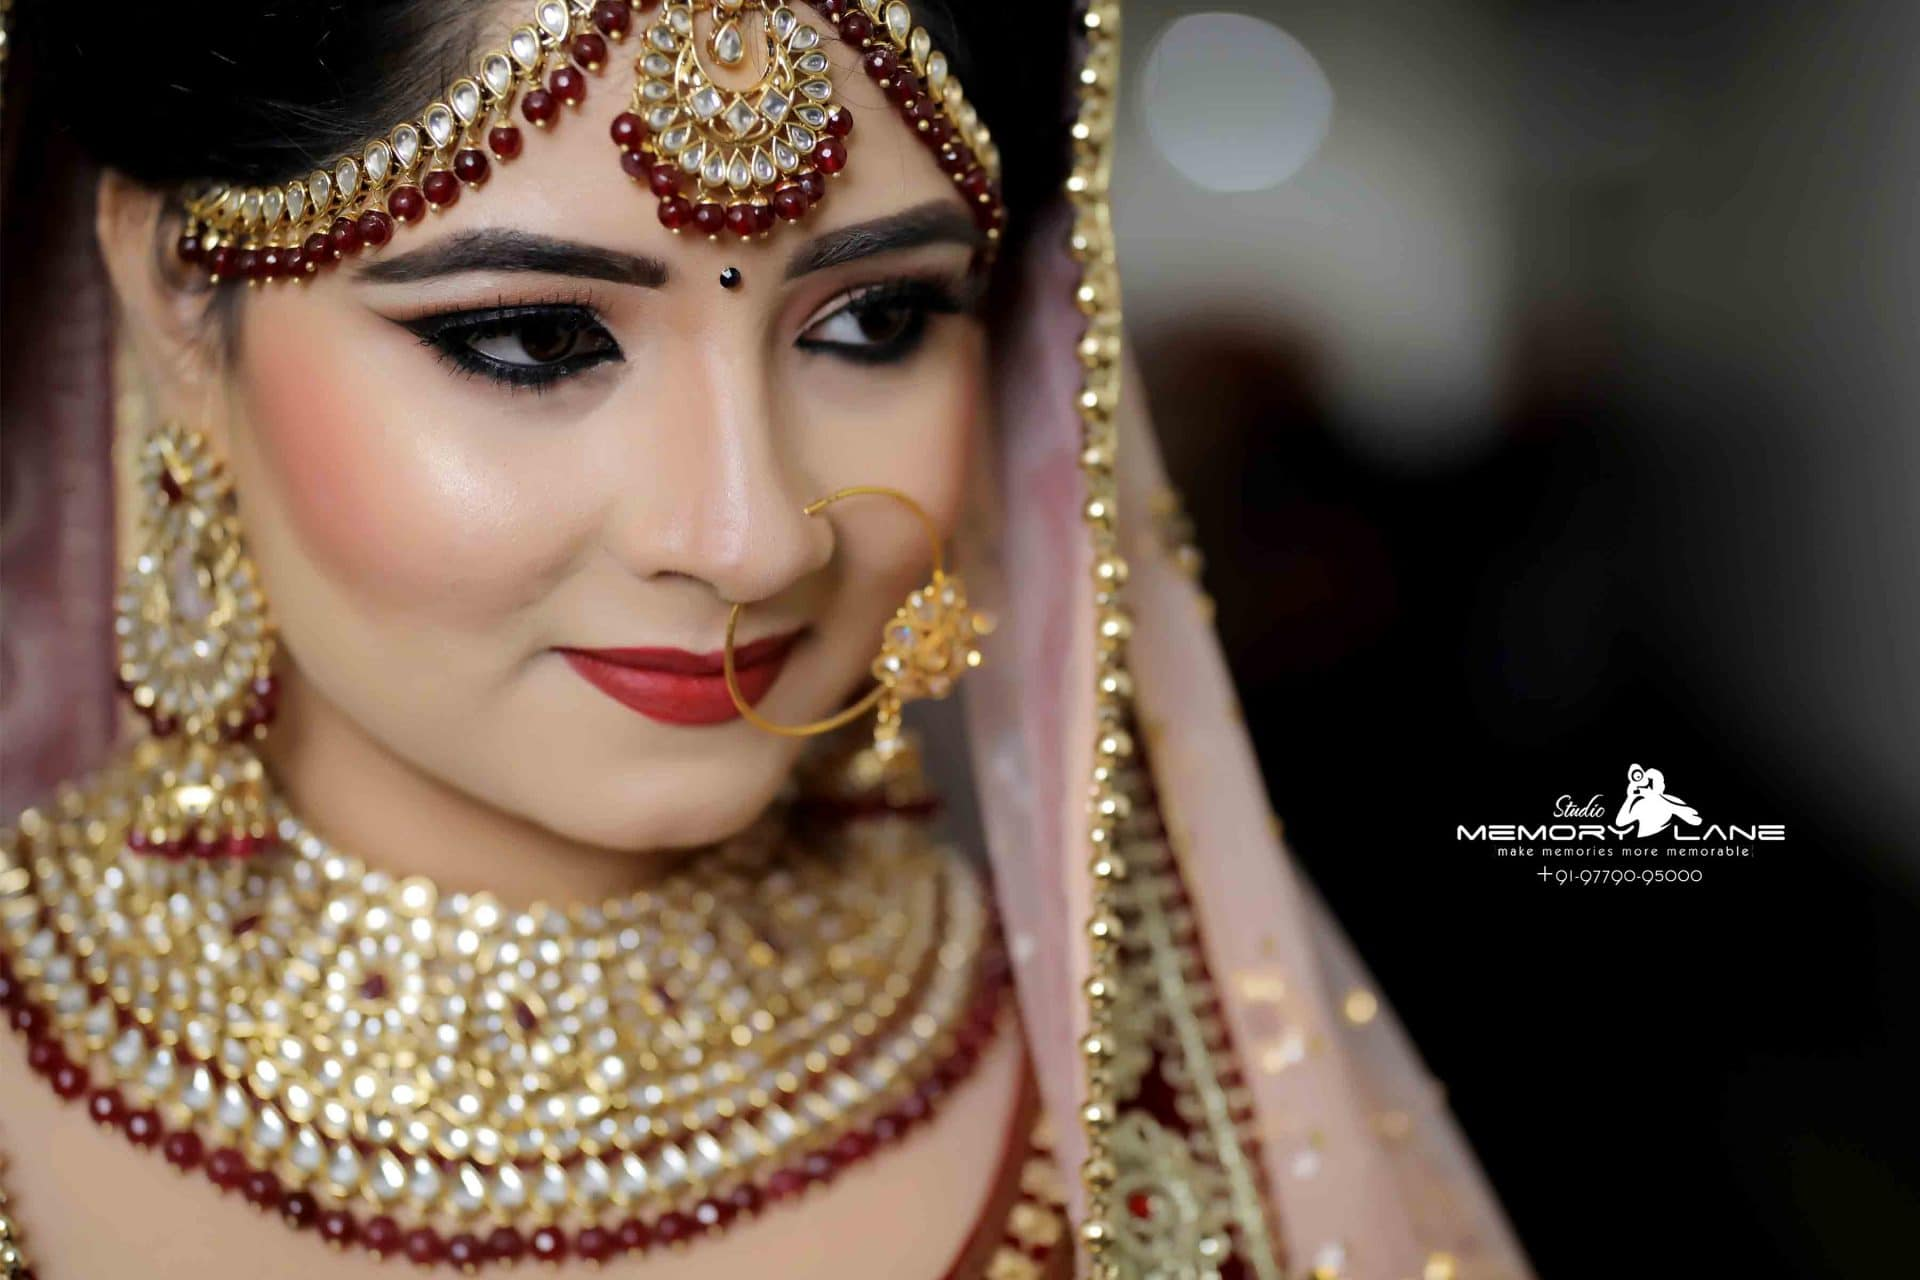 Best candid wedding photographer Amritsar | Shining like a pearl!